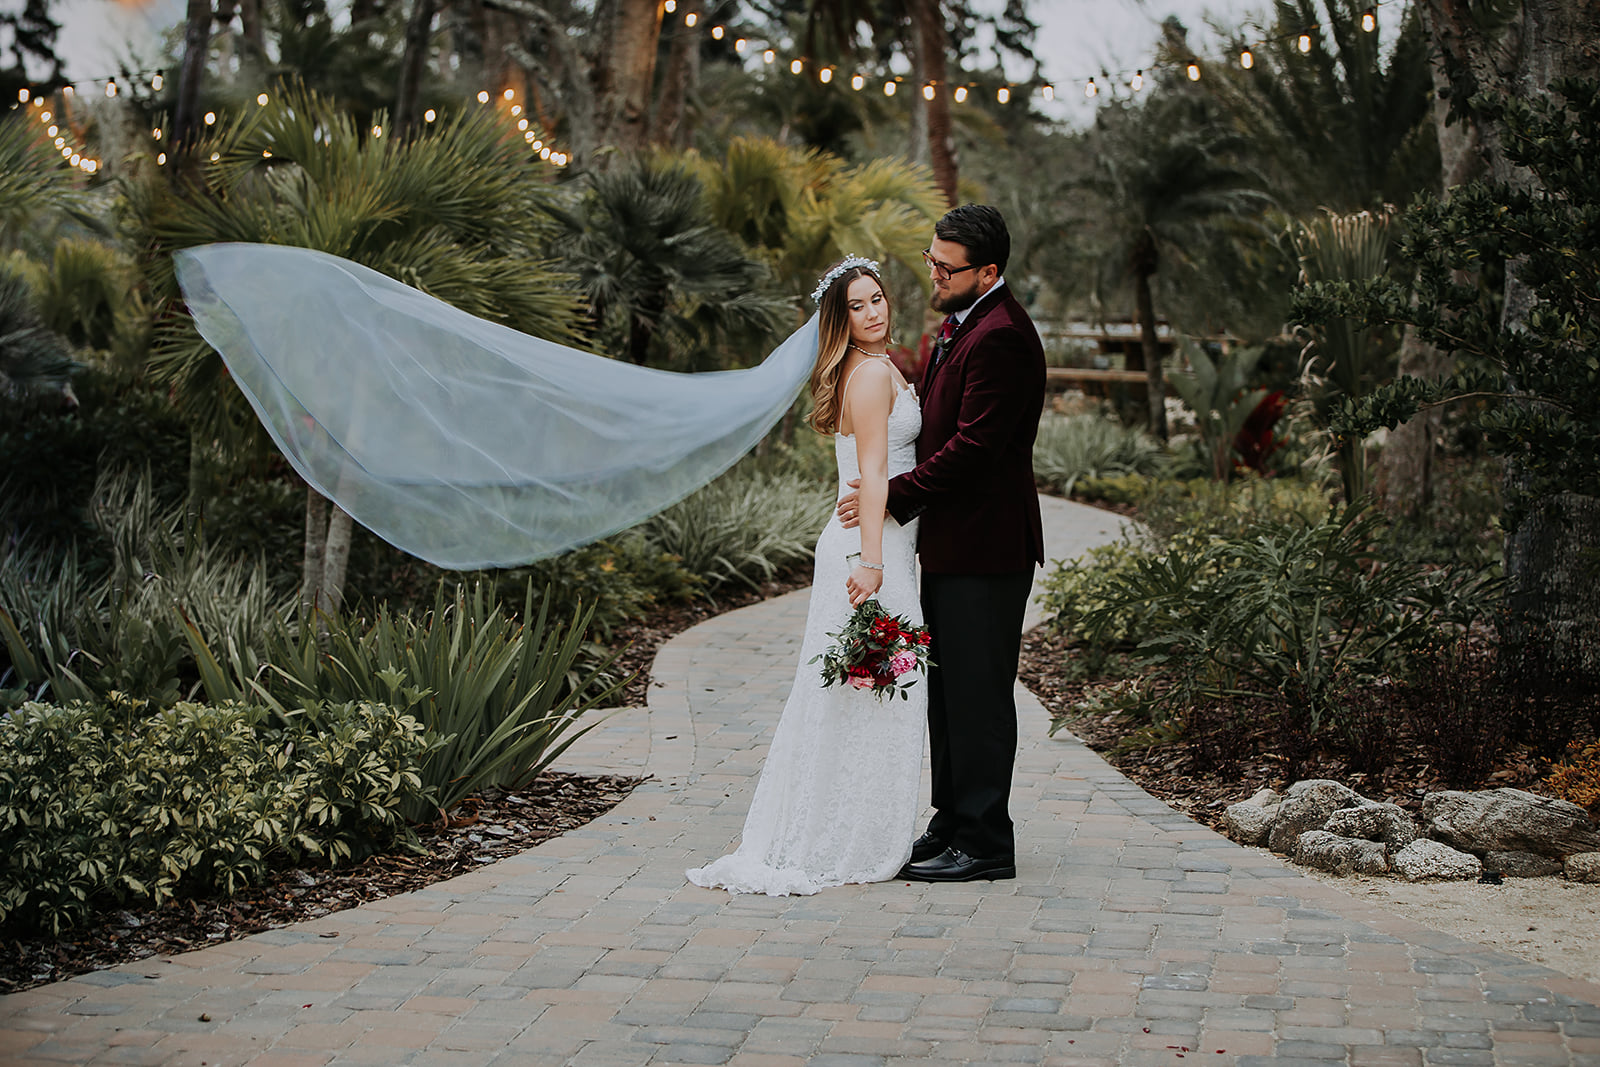 Grant Station Events - newlyweds in lush setting on paved stone path